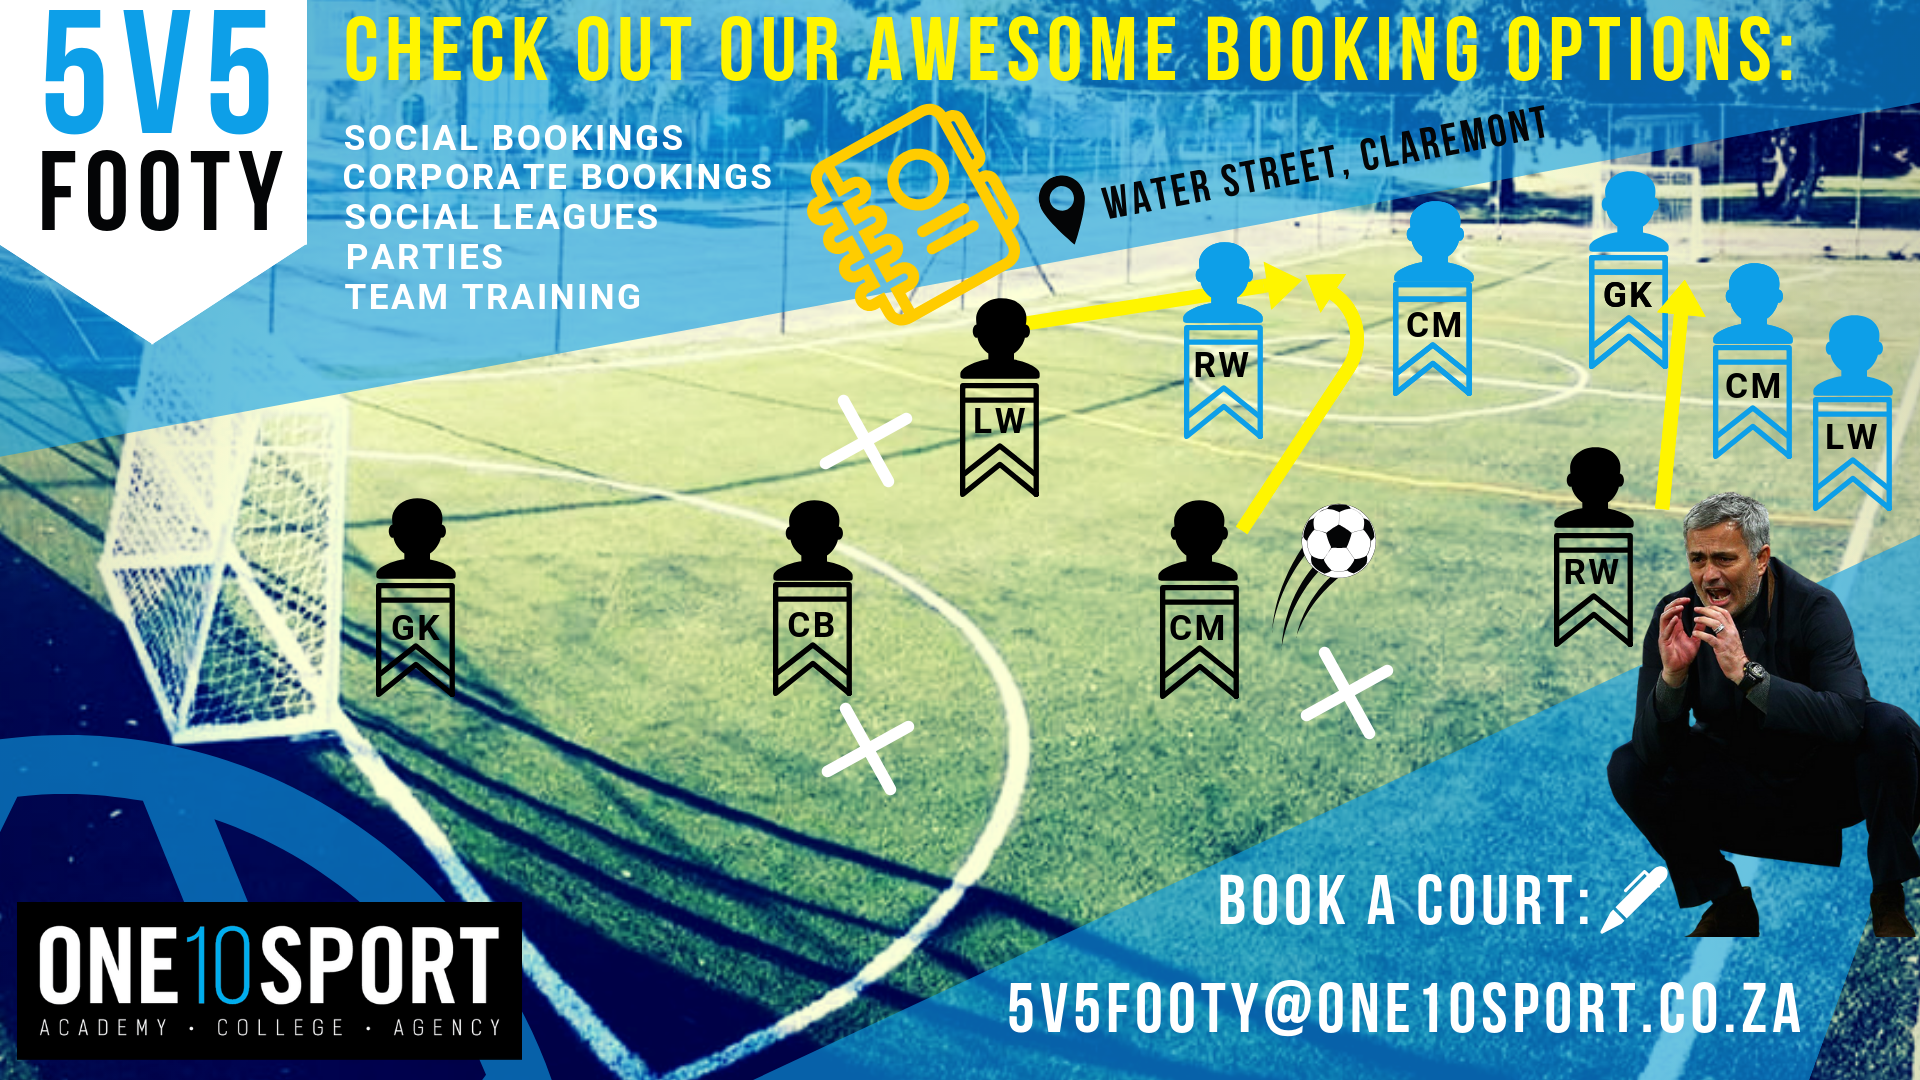 Five a side football in the Southern Suburbs (Cape Town)